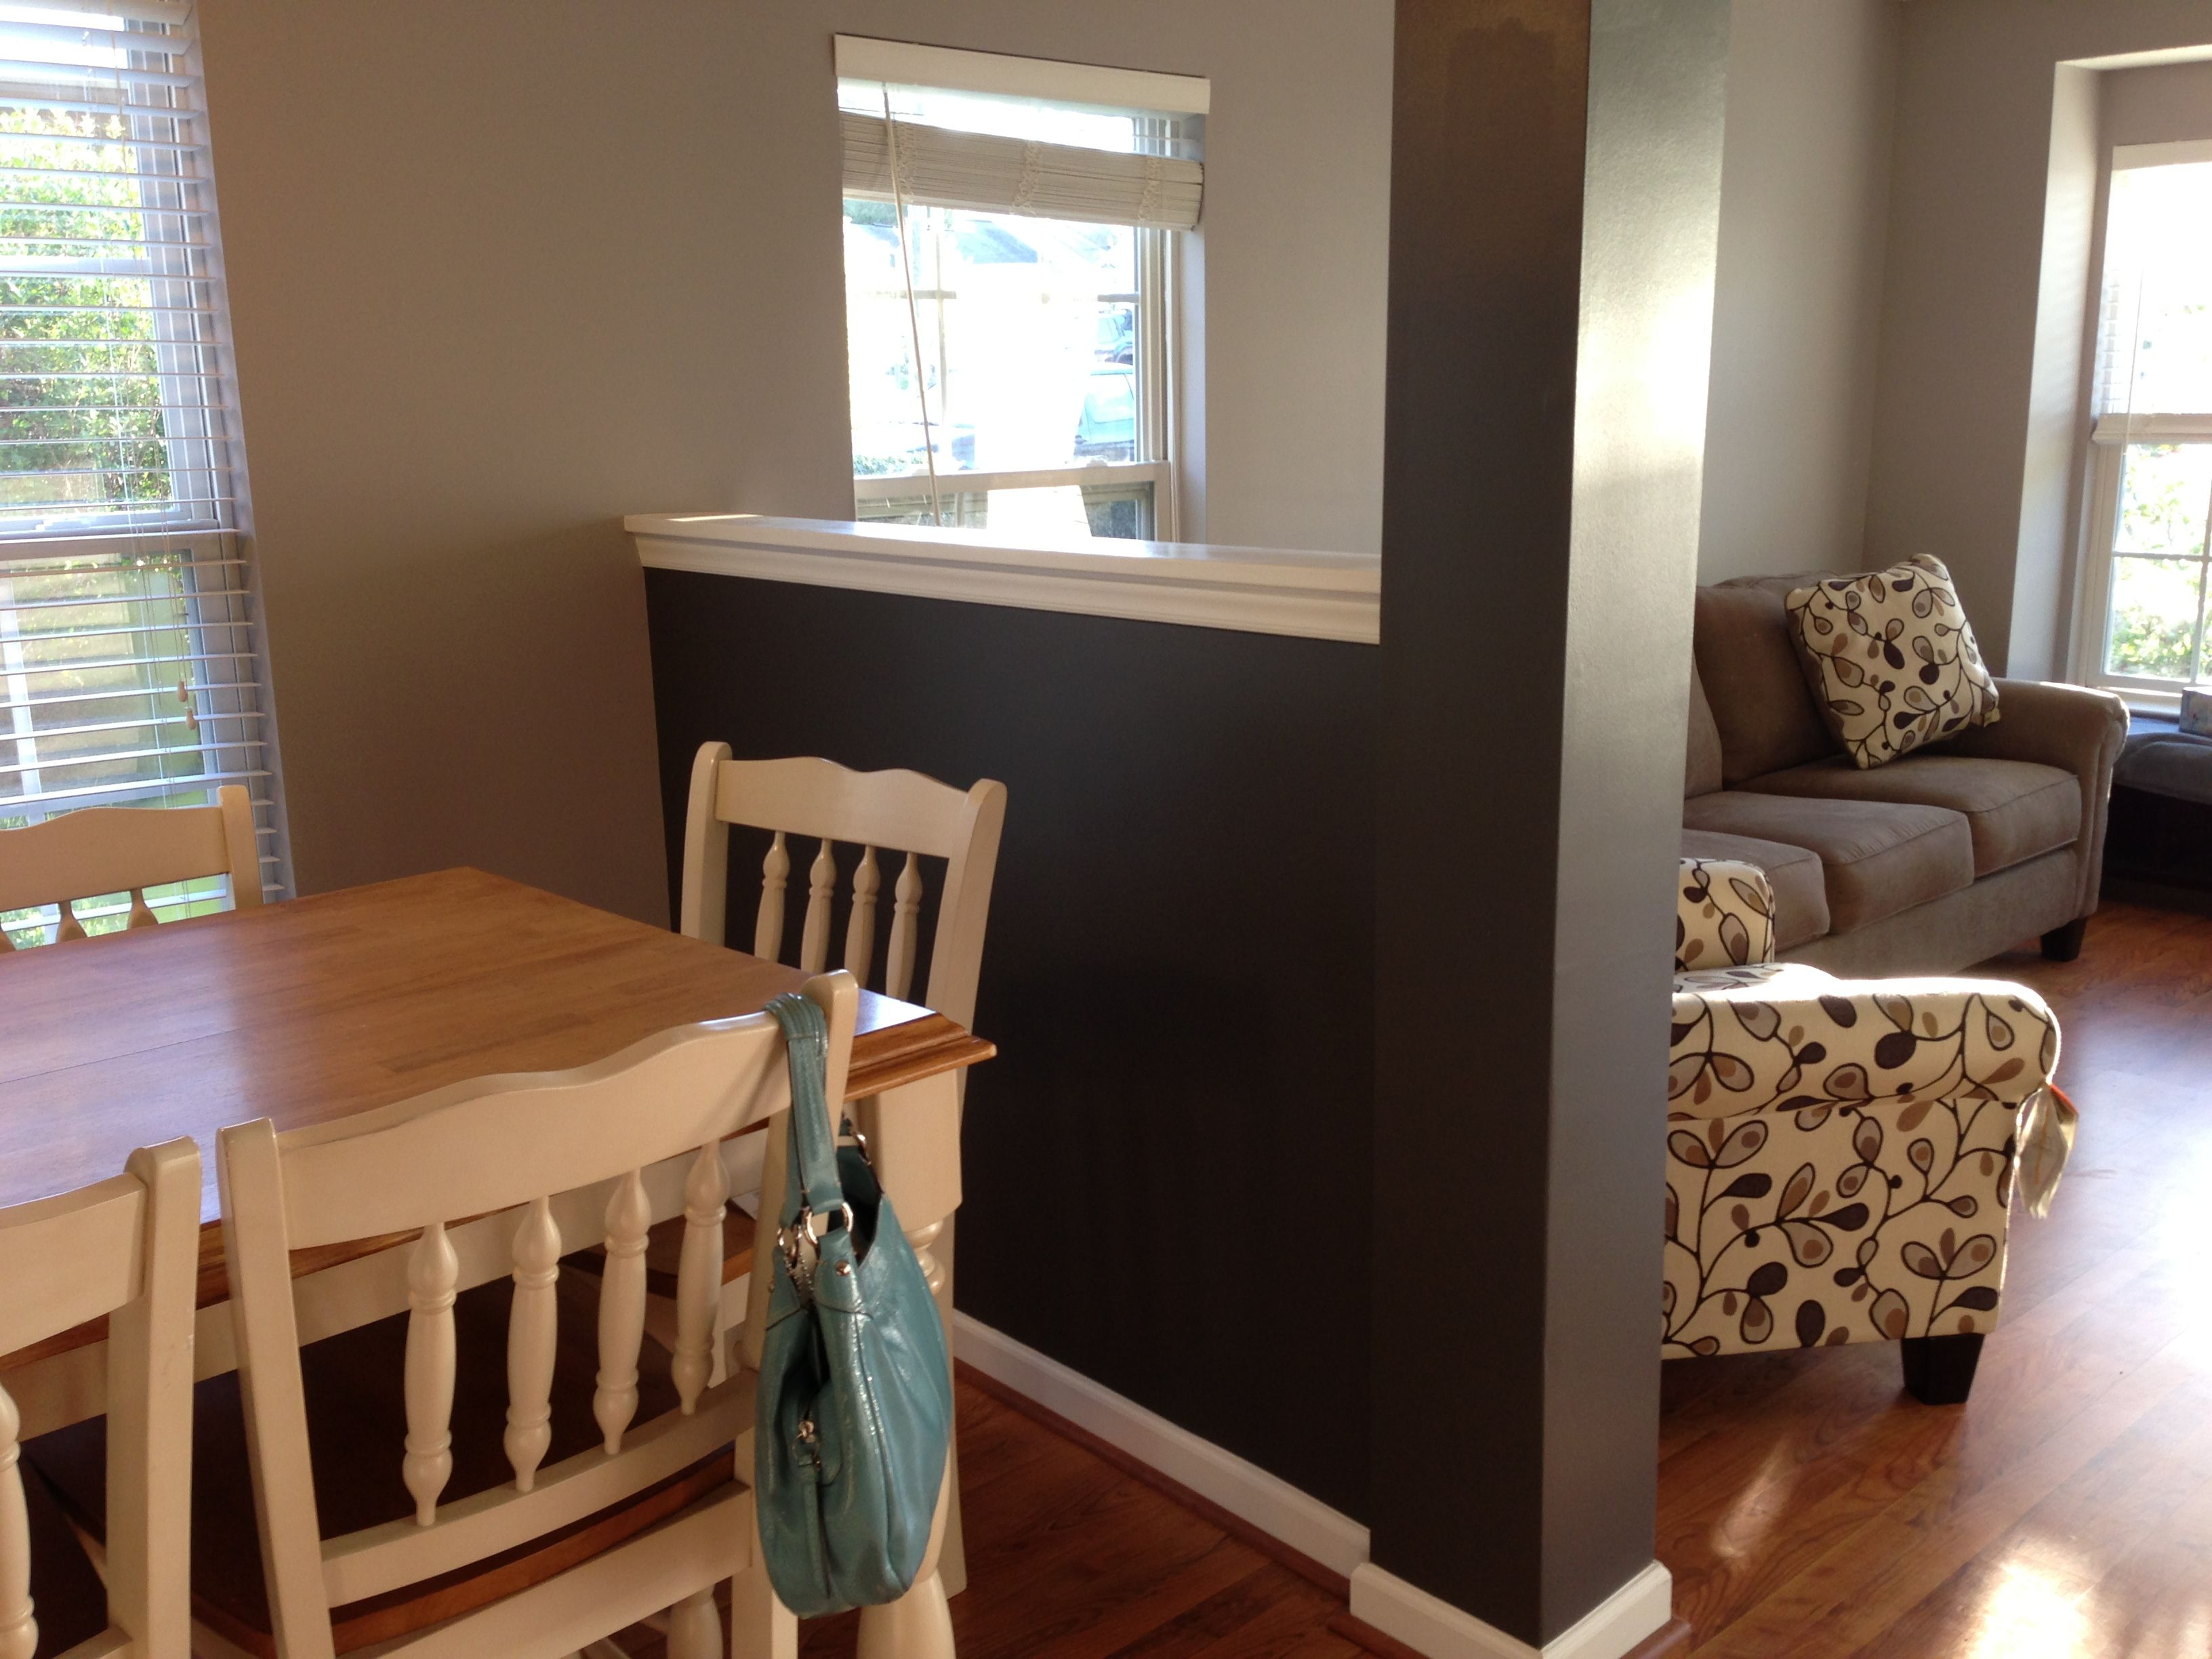 Accent Wall Color accent wall - peppercornsherwin williams - main wall color is